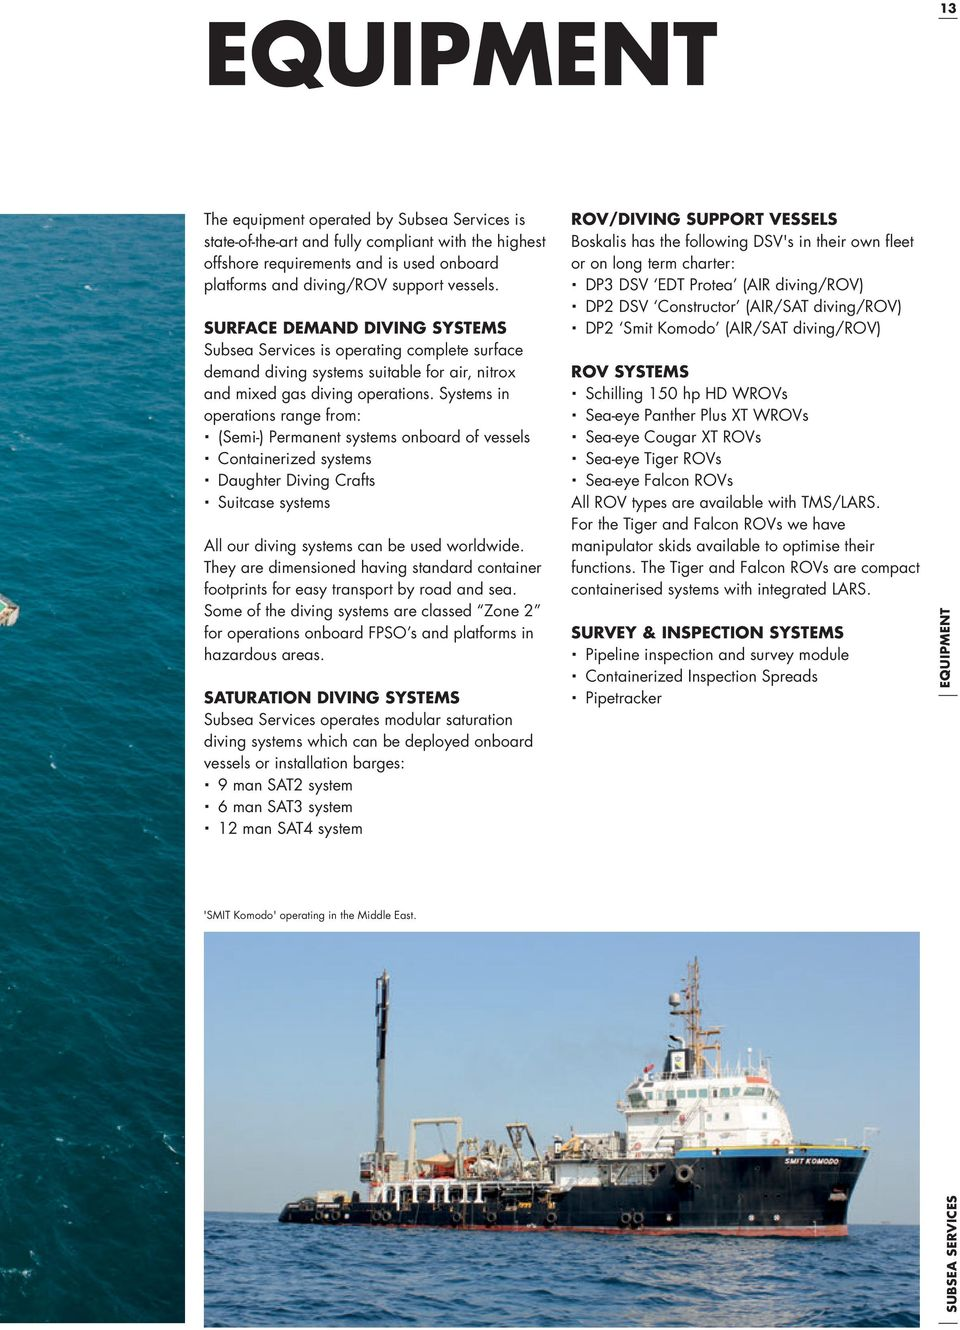 Systems in operations range from: (Semi-) Permanent systems onboard of vessels Containerized systems Daughter Diving Crafts Suitcase systems All our diving systems can be used worldwide.